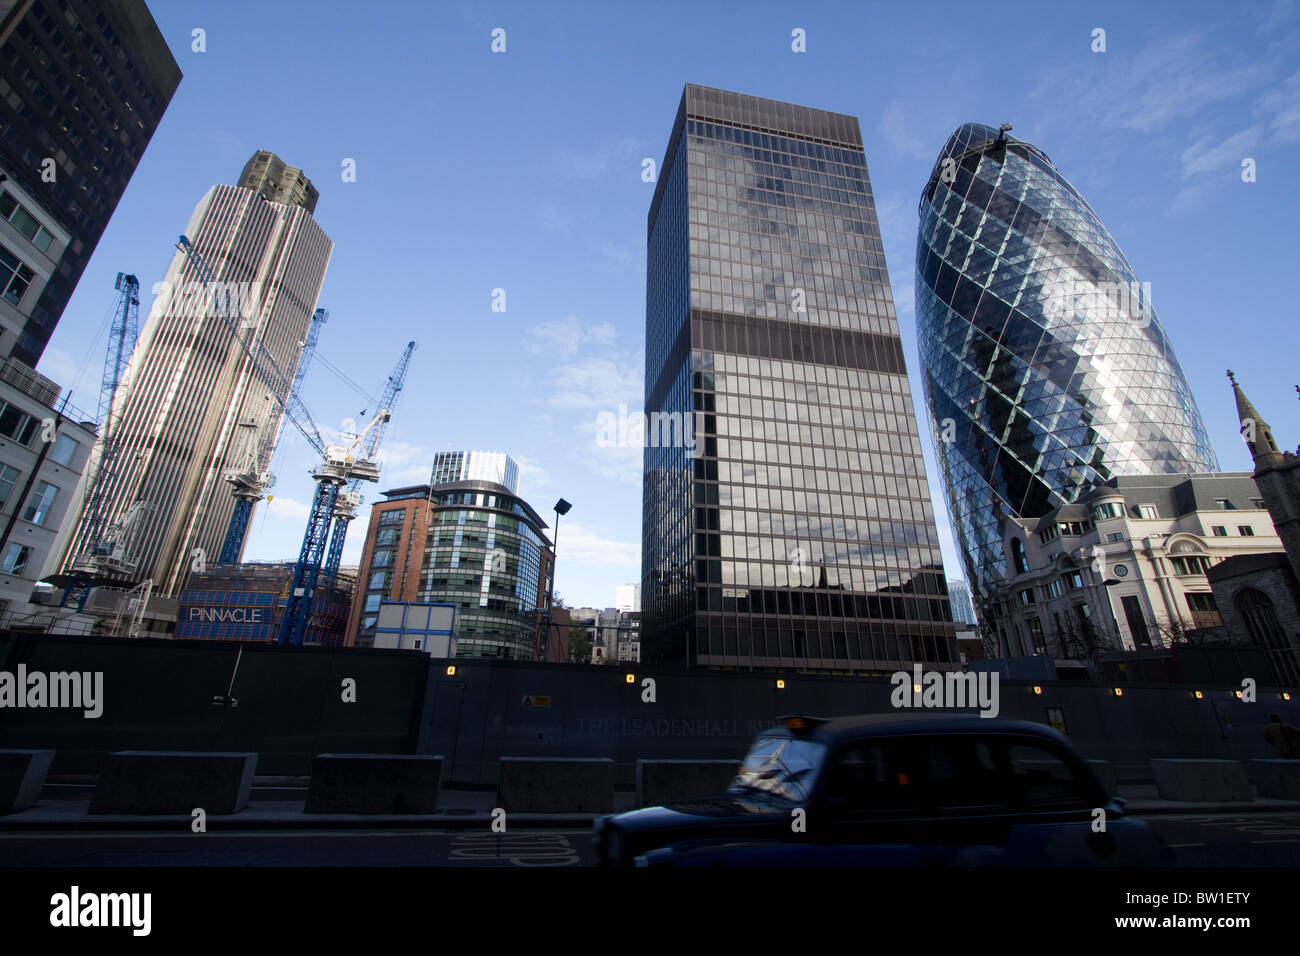 London building  works,Tower 42 aka Natwest tower, works for the Pinnacle tower Aviva building and the  swiss re - Stock Image